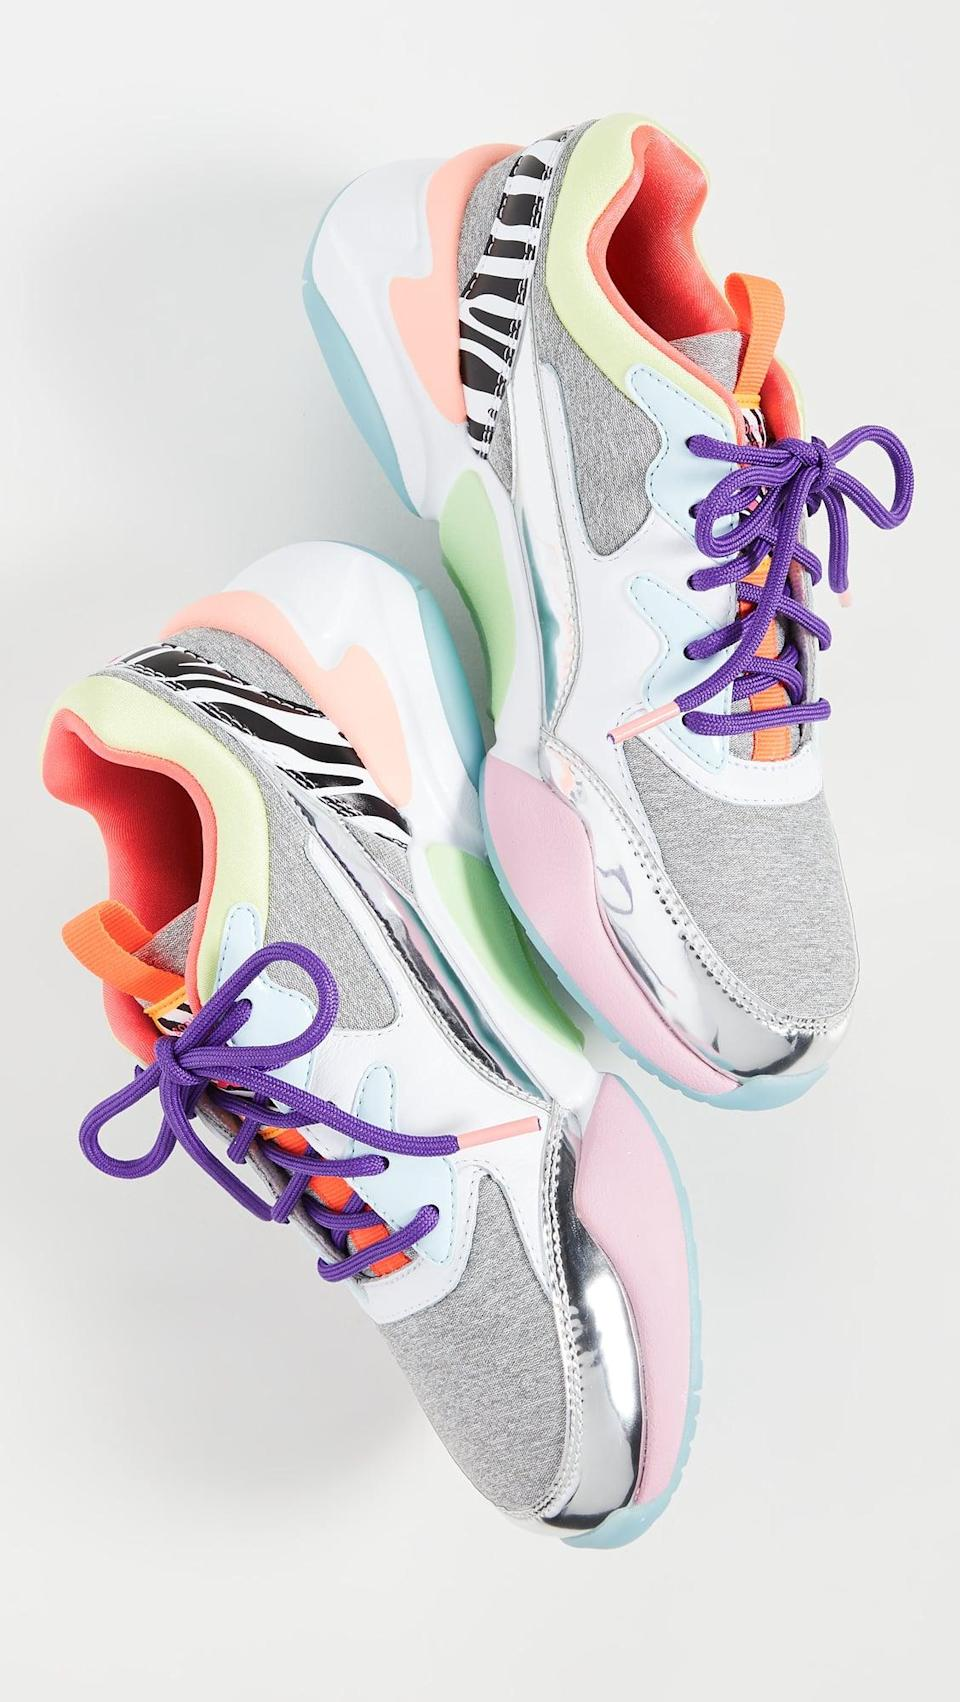 "<p><a href=""https://www.popsugar.com/buy/PUMA-Nova-Sophia-Webster-Sneakers-520368?p_name=PUMA%20Nova%20Sophia%20Webster%20Sneakers&retailer=shopbop.com&pid=520368&price=110&evar1=fab%3Aus&evar9=44311634&evar98=https%3A%2F%2Fwww.popsugar.com%2Ffashion%2Fphoto-gallery%2F44311634%2Fimage%2F46920955%2FPUMA-Nova-Sophia-Webster-Sneakers&list1=shopping%2Cshoes%2Csneakers%2Choliday%2Cgift%20guide%2Ceditors%20pick%2Cfashion%20gifts%2Cgifts%20for%20women&prop13=api&pdata=1"" class=""link rapid-noclick-resp"" rel=""nofollow noopener"" target=""_blank"" data-ylk=""slk:PUMA Nova Sophia Webster Sneakers"">PUMA Nova Sophia Webster Sneakers </a> ($110)</p> <p>""I'm a sucker for color, so the moment I laid eyes on these cool Puma sneakers, I know I had to have them. I would wear them with jeans and a white tee so that they could be the start of my outfit."" - Macy Cate Williams, editor, Shop and Must Have</p>"